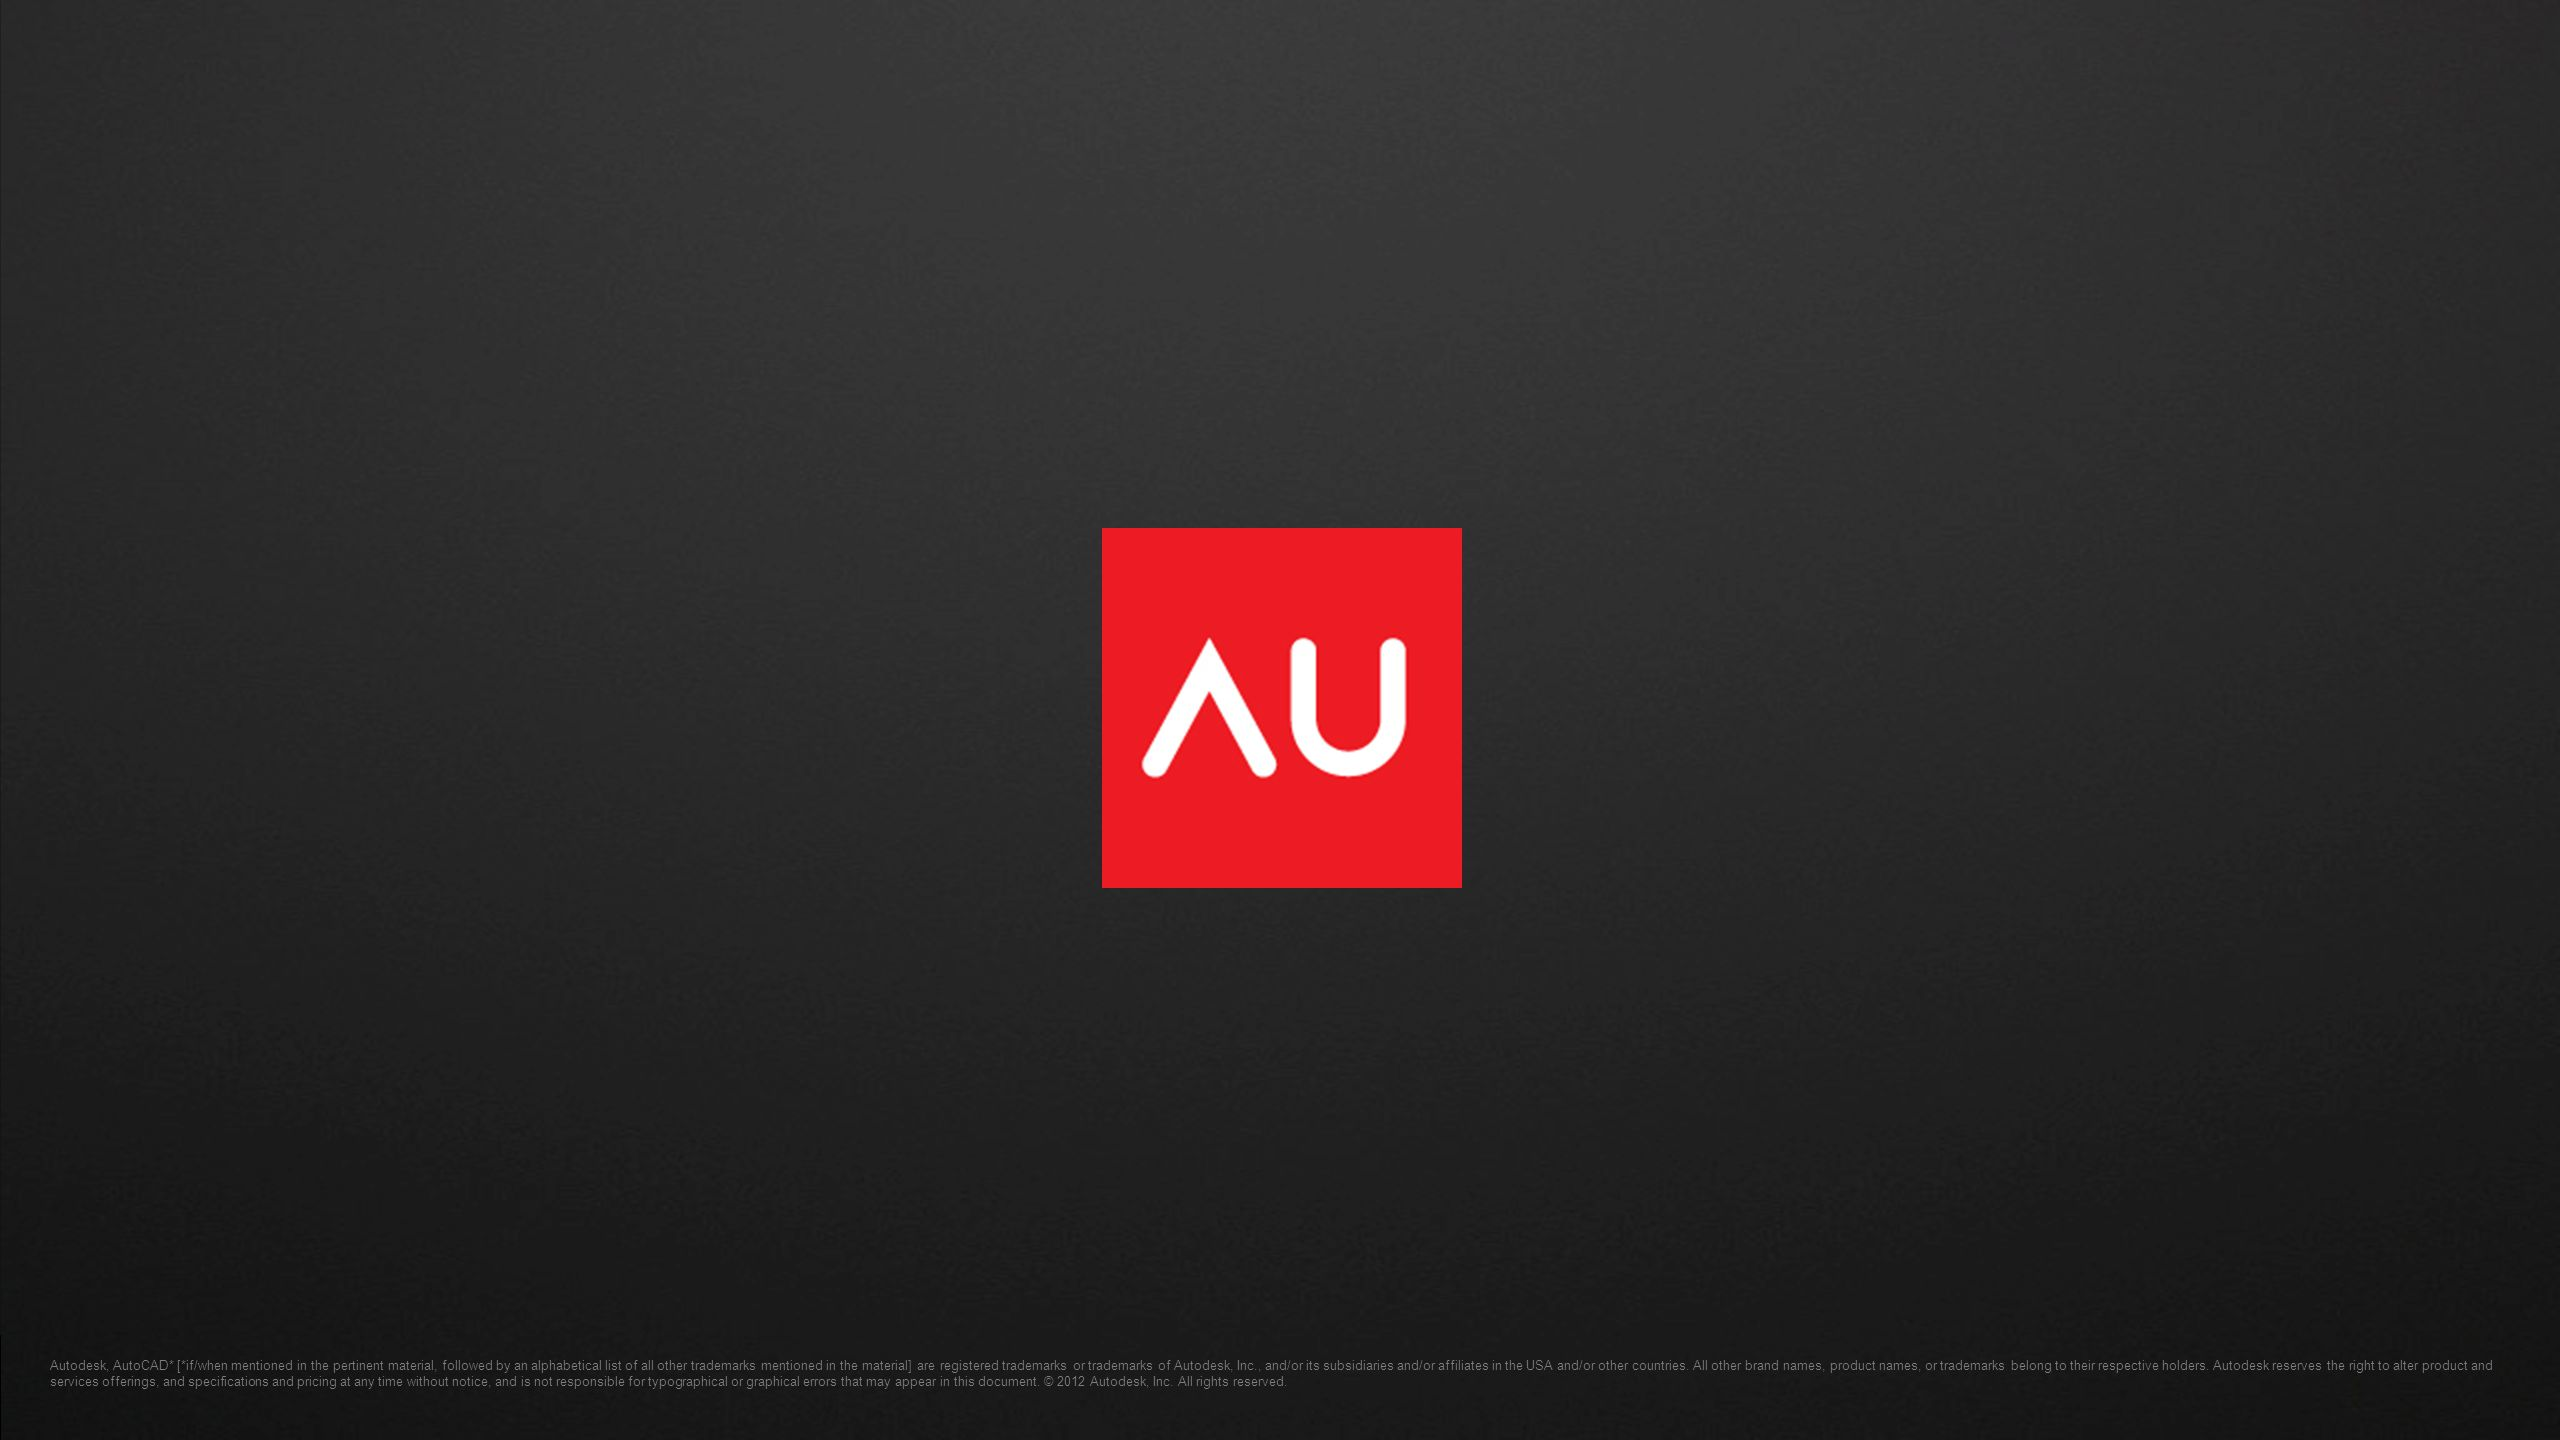 © 2012 Autodesk Autodesk, AutoCAD* [*if/when mentioned in the pertinent material, followed by an alphabetical list of all other trademarks mentioned in the material] are registered trademarks or trademarks of Autodesk, Inc., and/or its subsidiaries and/or affiliates in the USA and/or other countries.